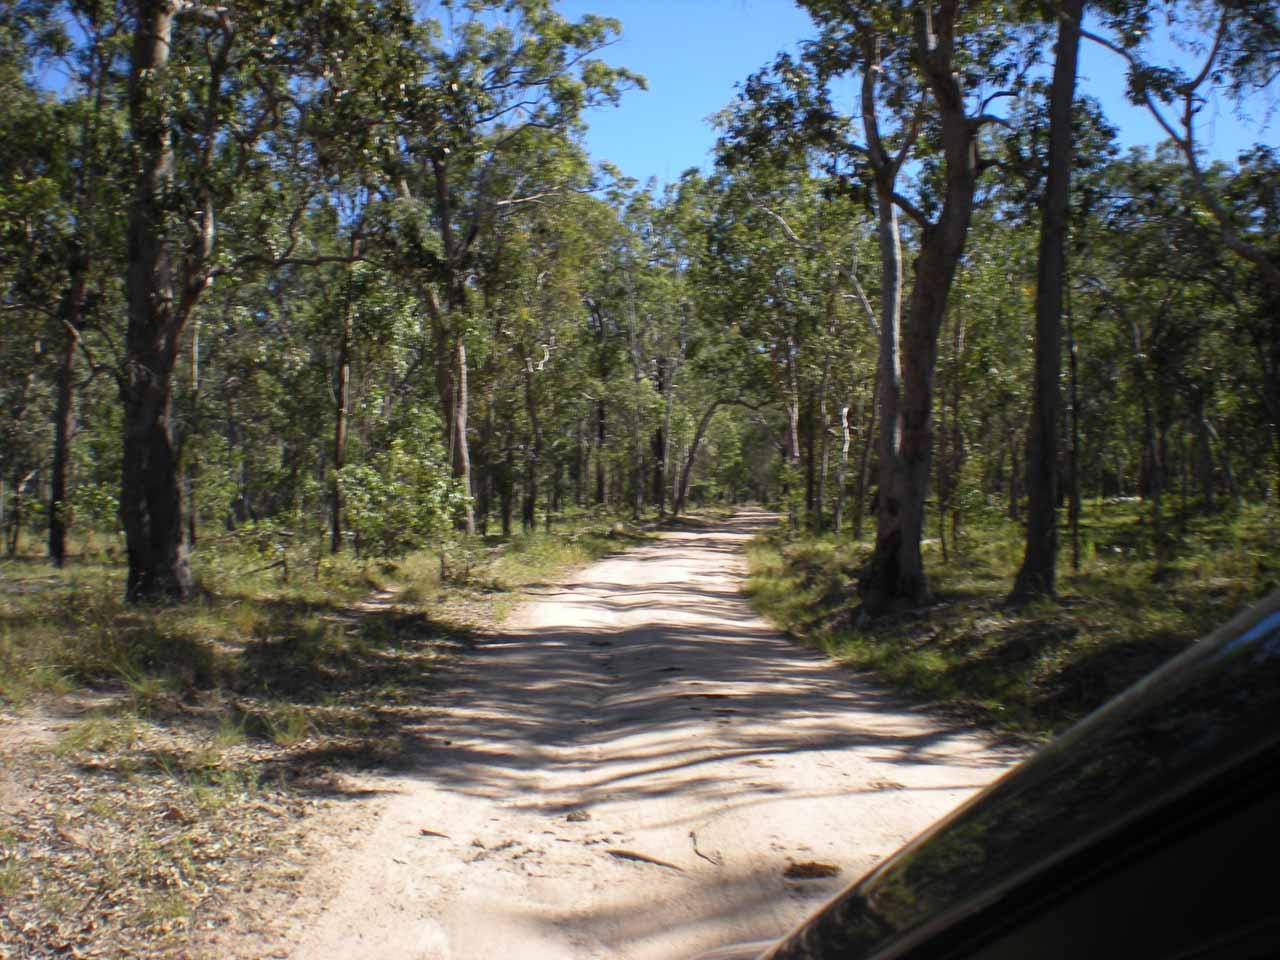 Driving the unmaintained 4wd road to access Blencoe Falls